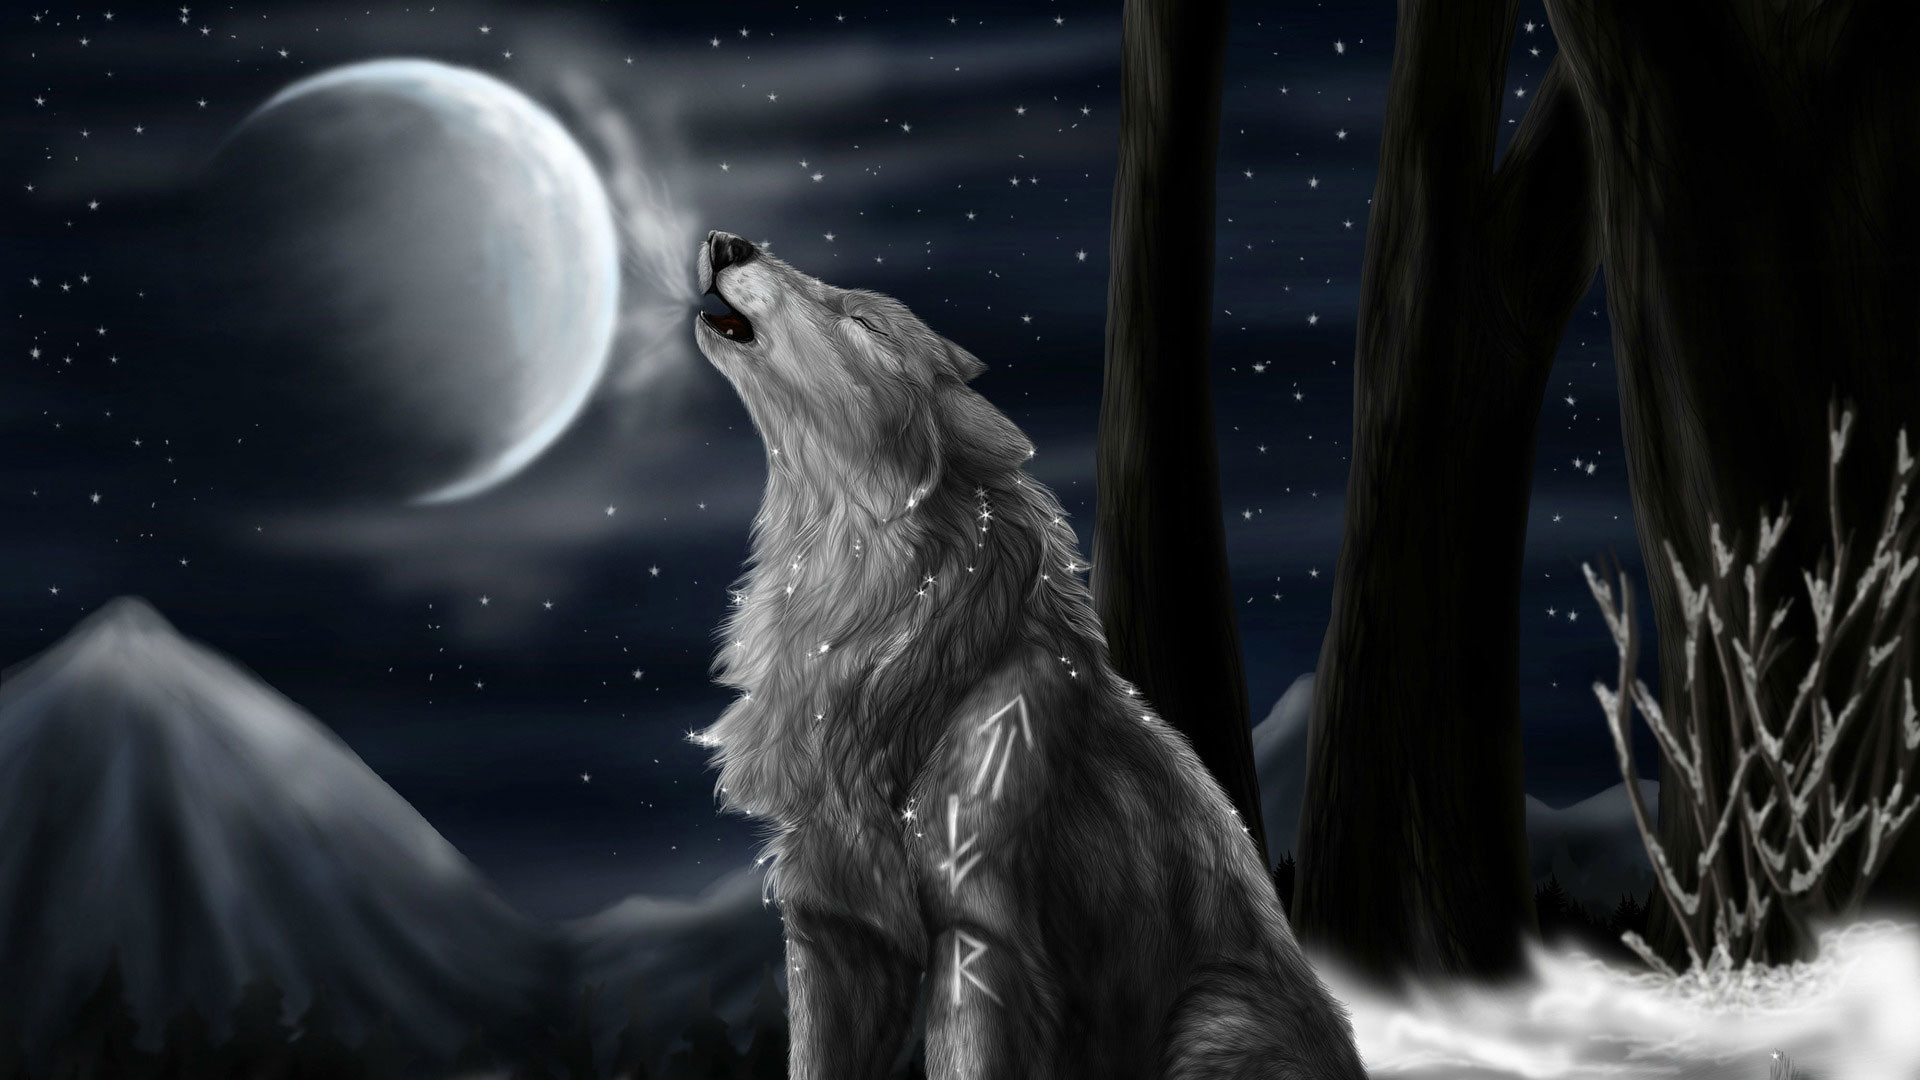 hd pics photos attractive 3d animated howling wolf in night hd quality desktop  background wallpaper